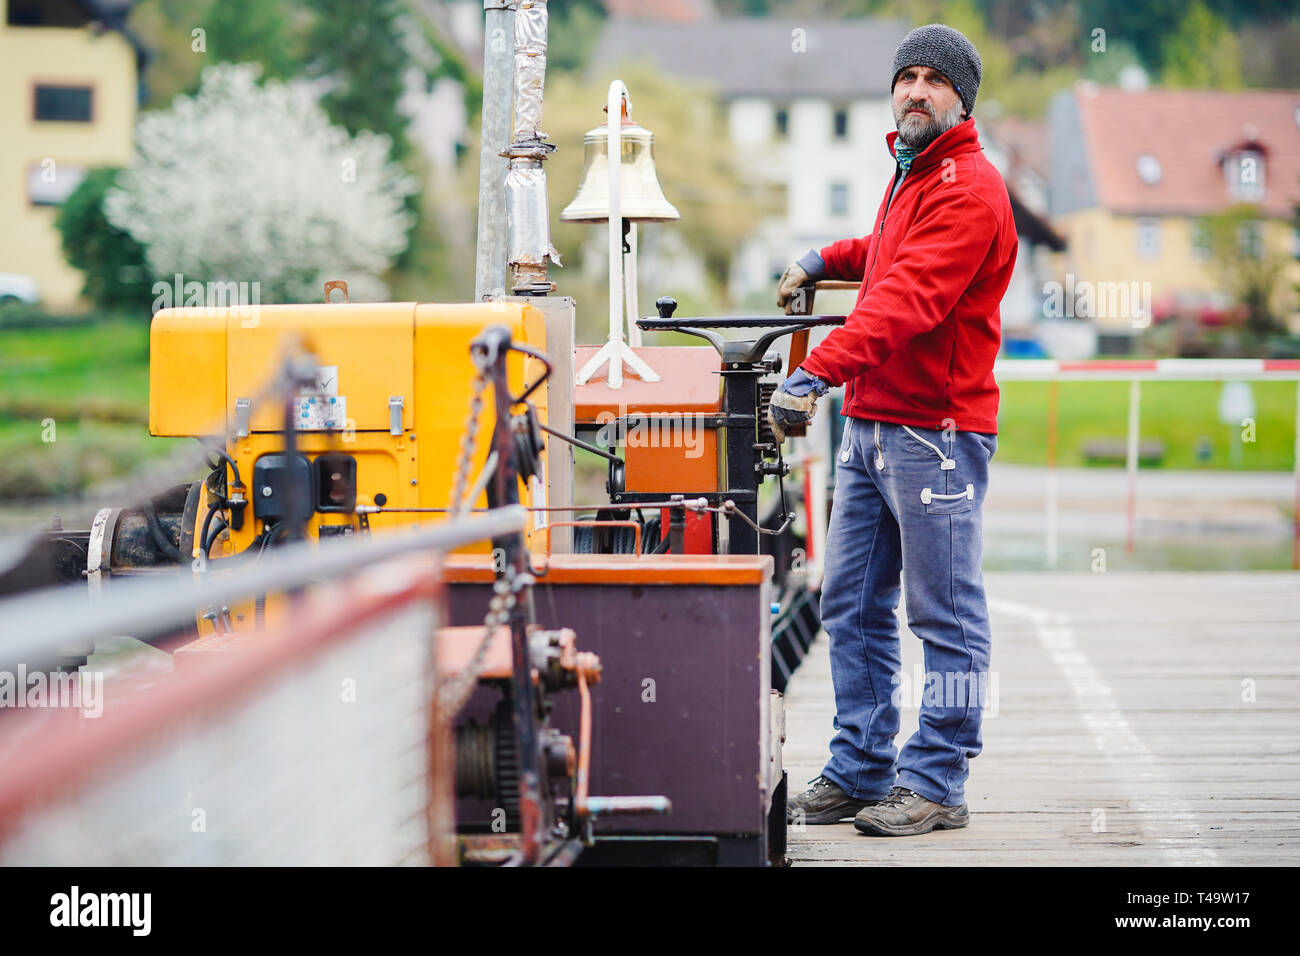 08 April 2019, Baden-Wuerttemberg, Neckargemünd: Ferryman Markus Seibert stands on the ferry across the Neckar between Neckarhausen and Neckarhäuserhof. (to dpa: 'Ferryman between the federal states - young talent worries solved' of 15.04.2019) Photo: Uwe Anspach/dpa - Stock Image